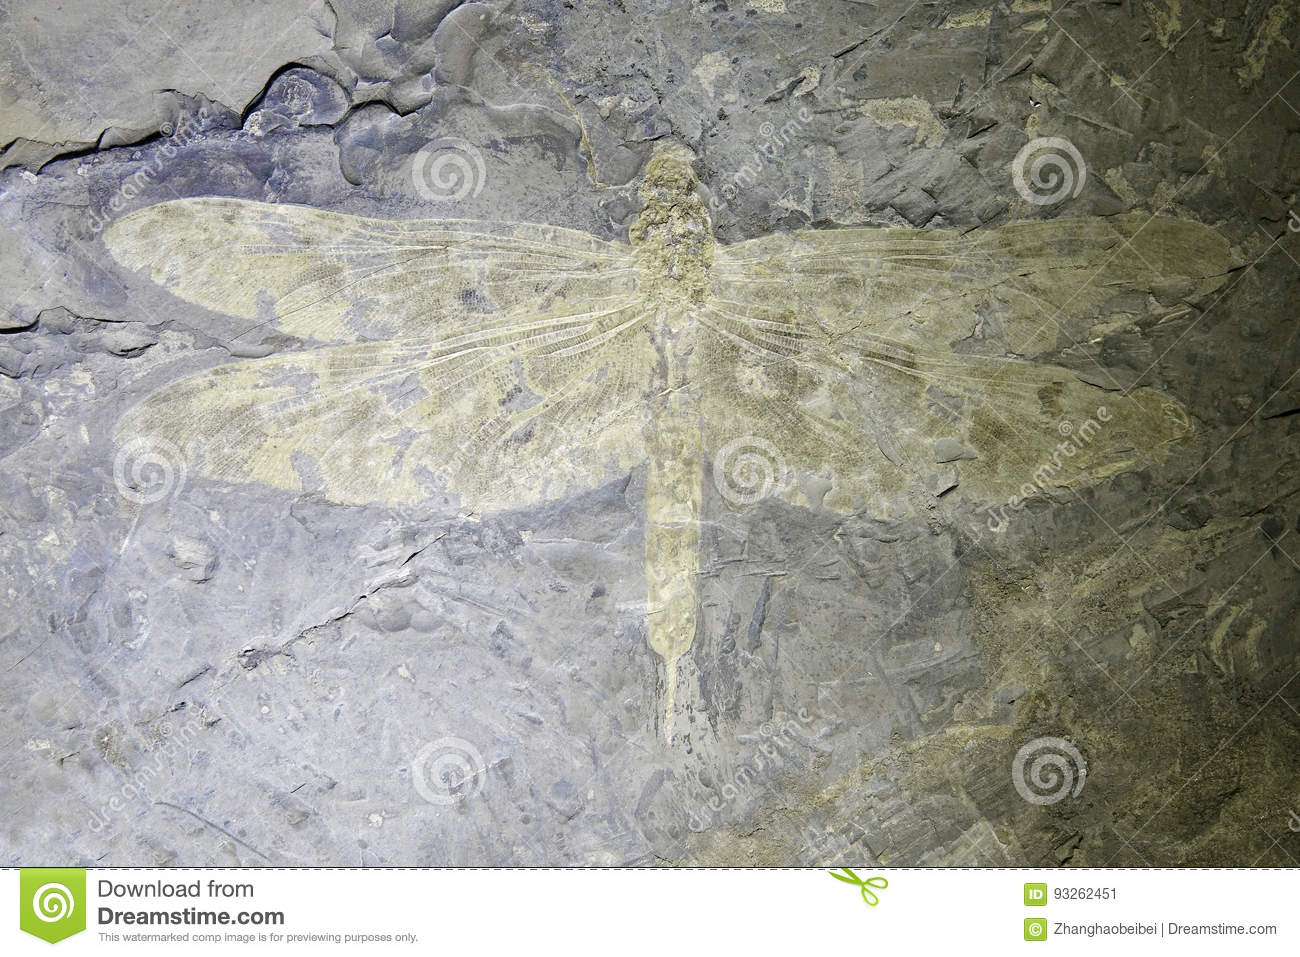 Download Dragonfly fossil stock image. Image of aeschnidium, ancient - 93262451